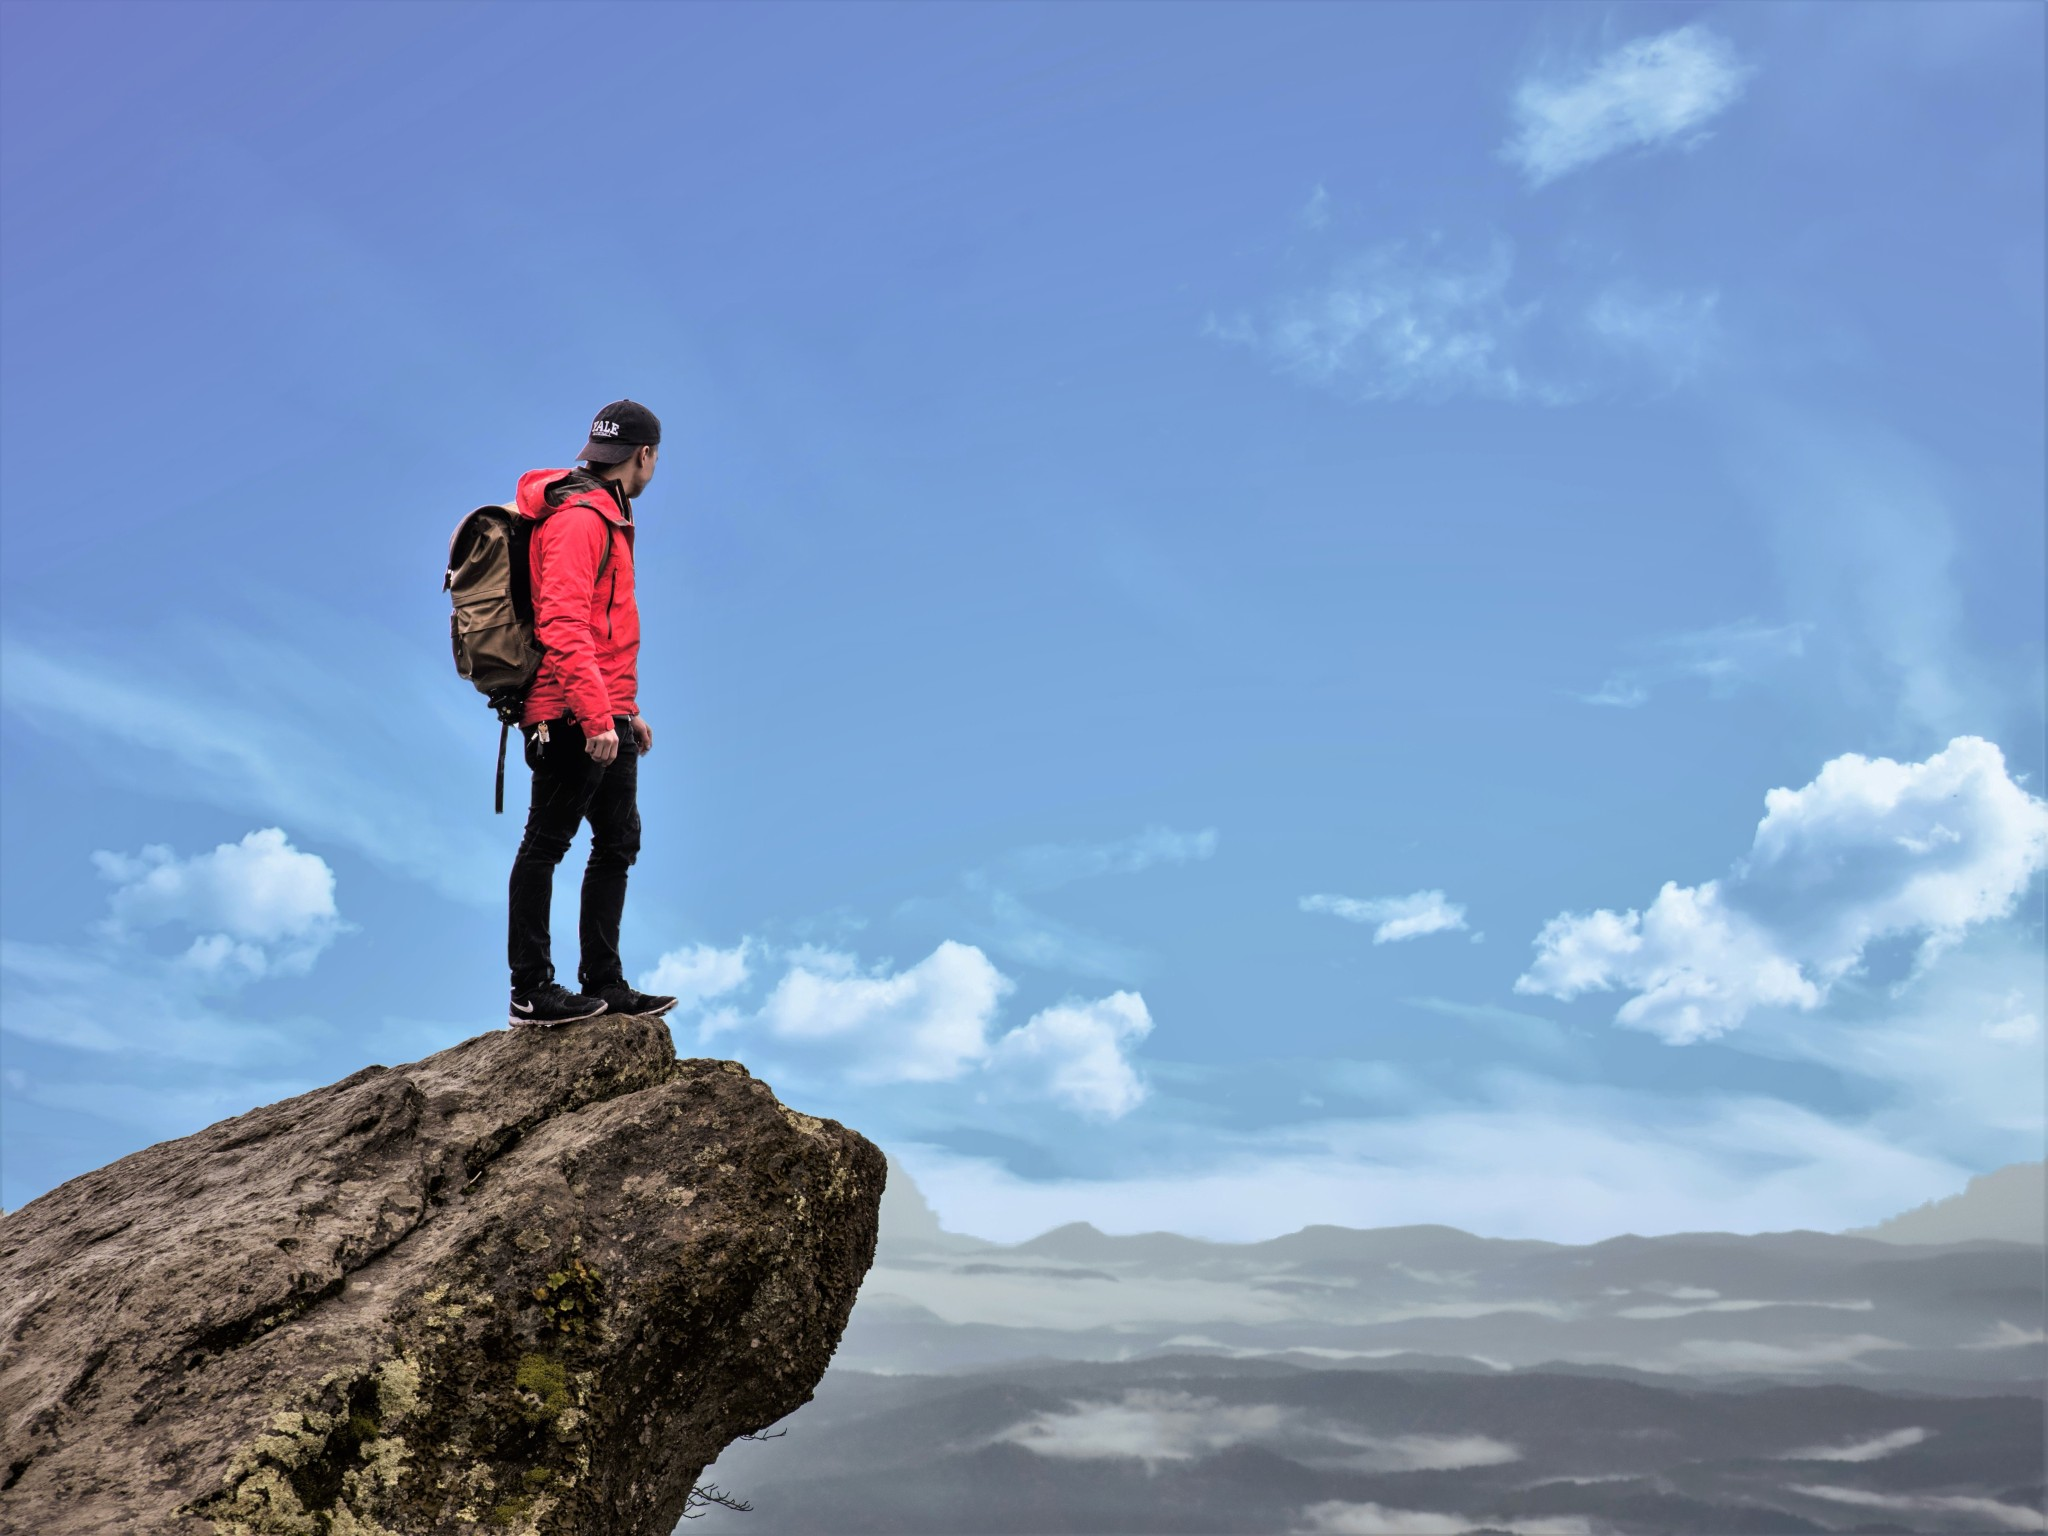 Male hiker standing on the precipice of a chasm contemplating his future.